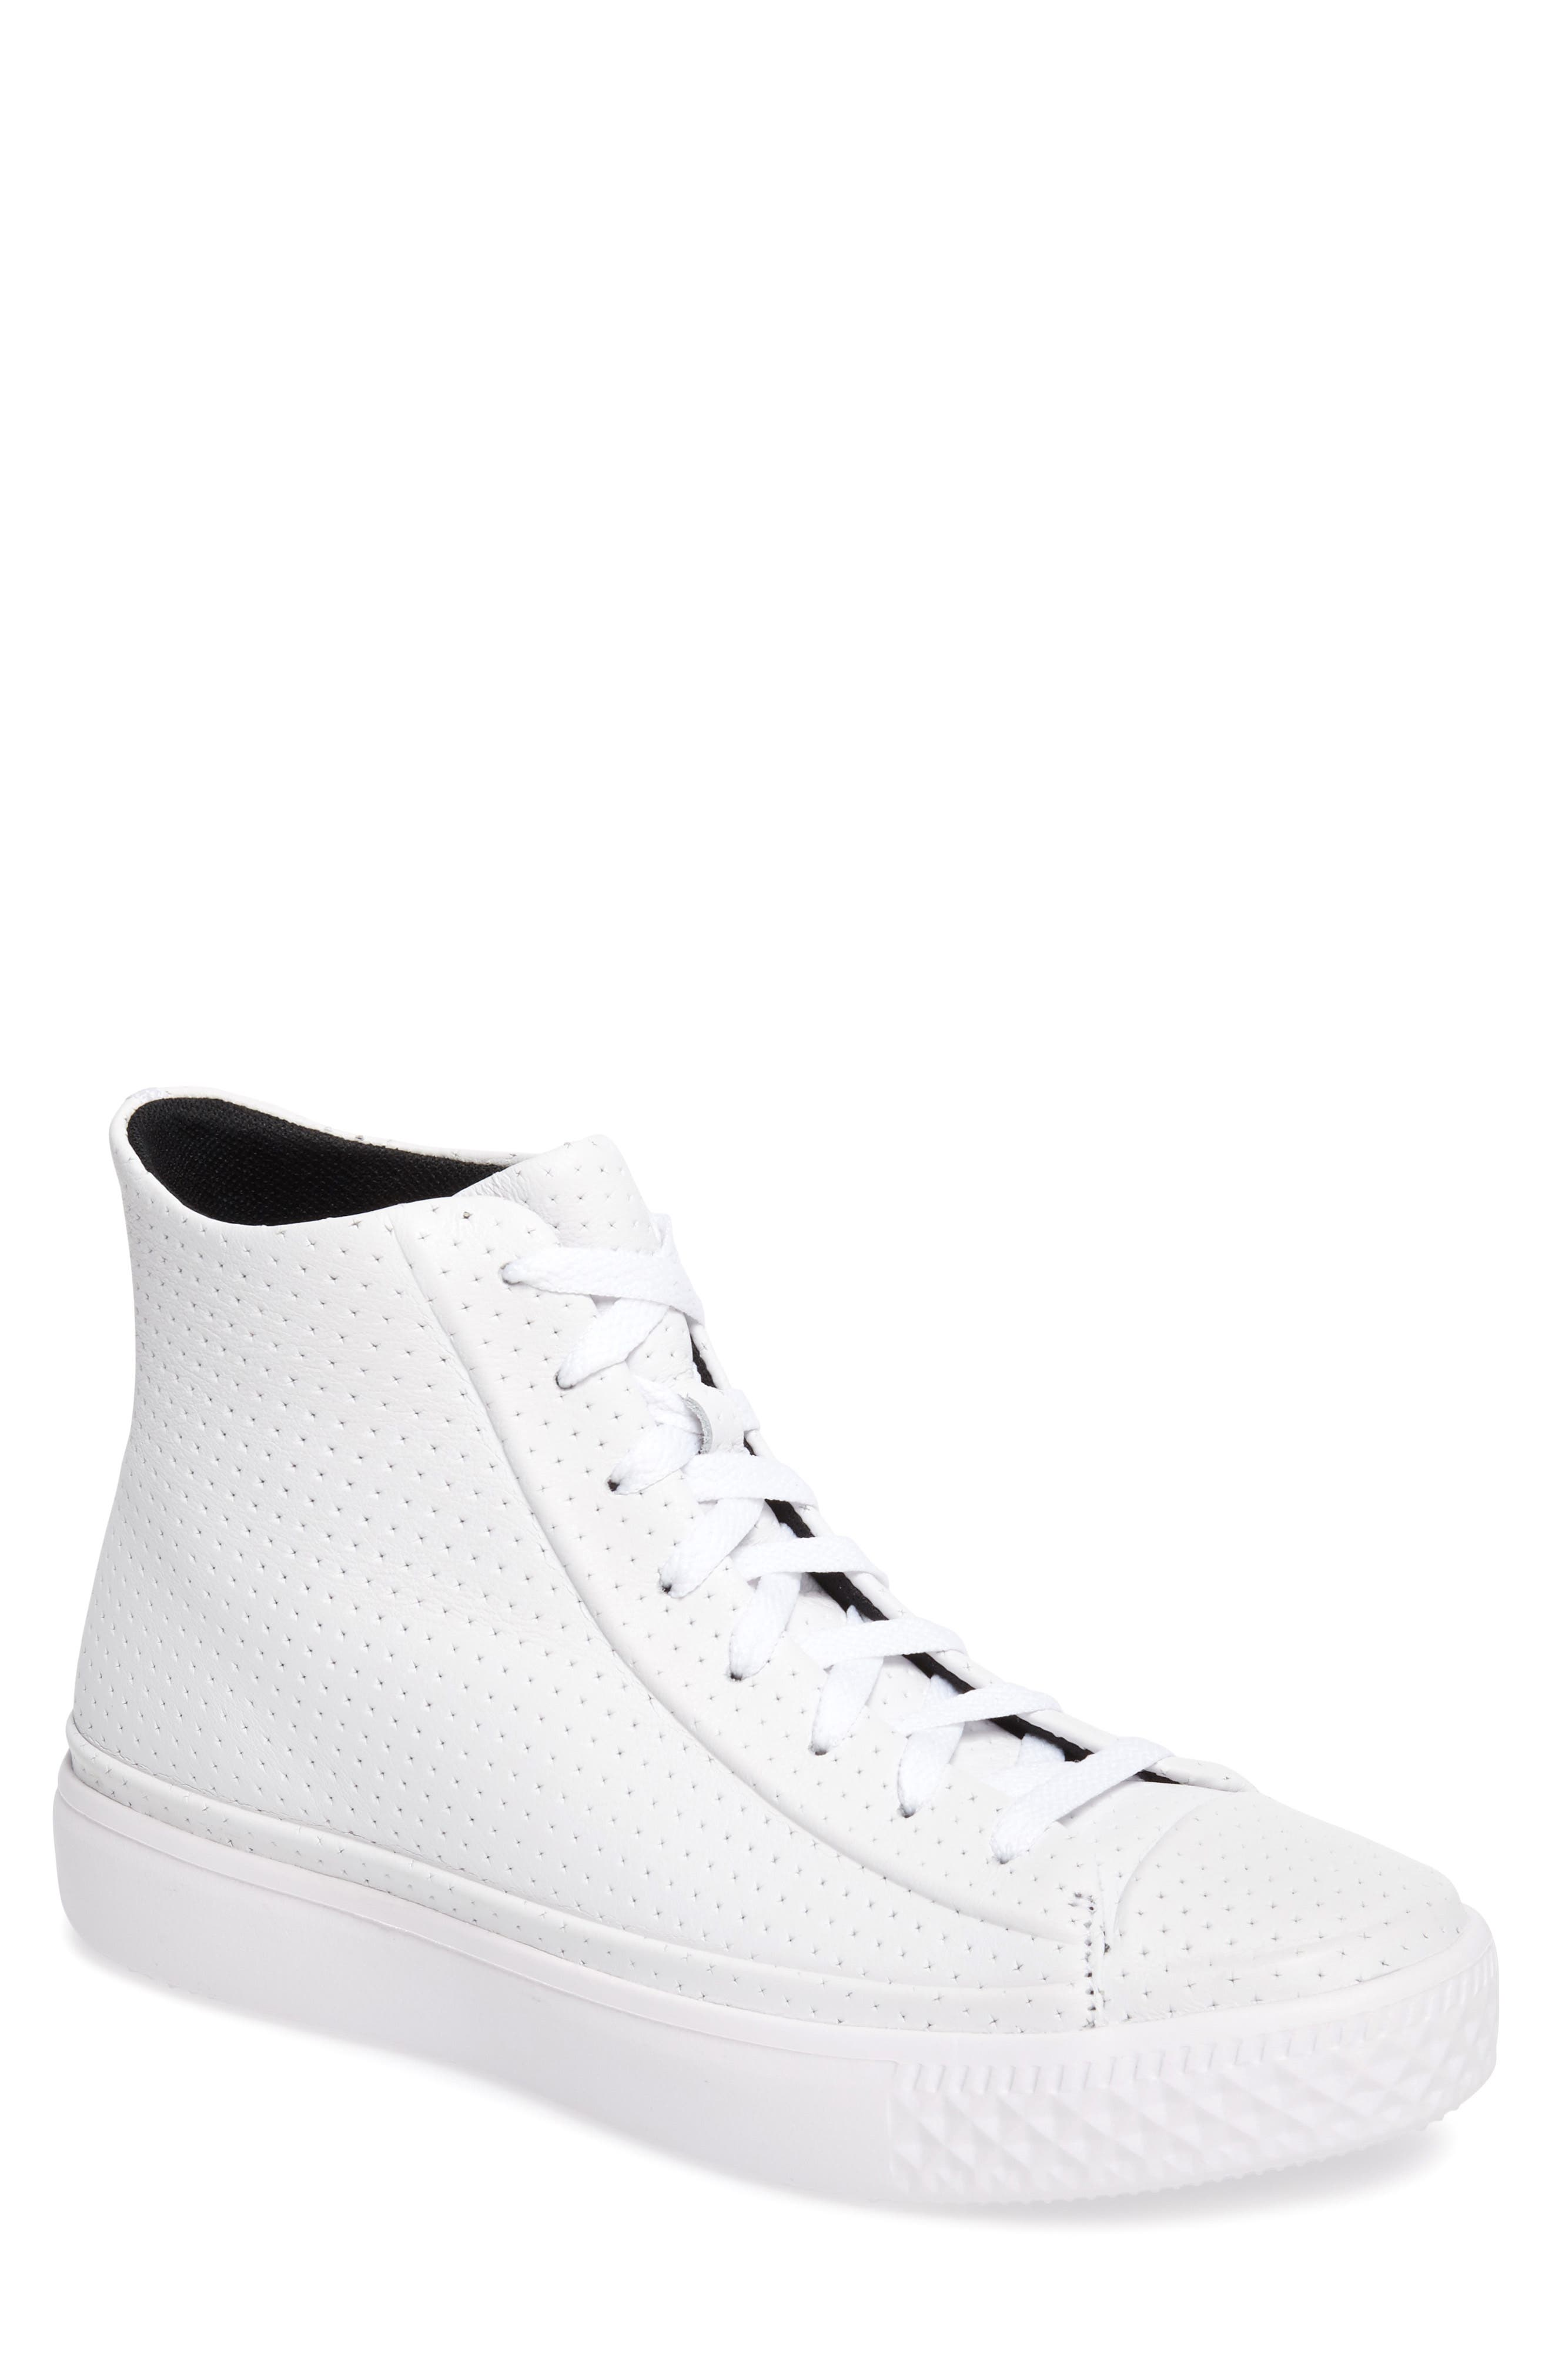 Chuck Taylor<sup>®</sup> All-Star<sup>®</sup> Leather Sneaker,                             Main thumbnail 1, color,                             100